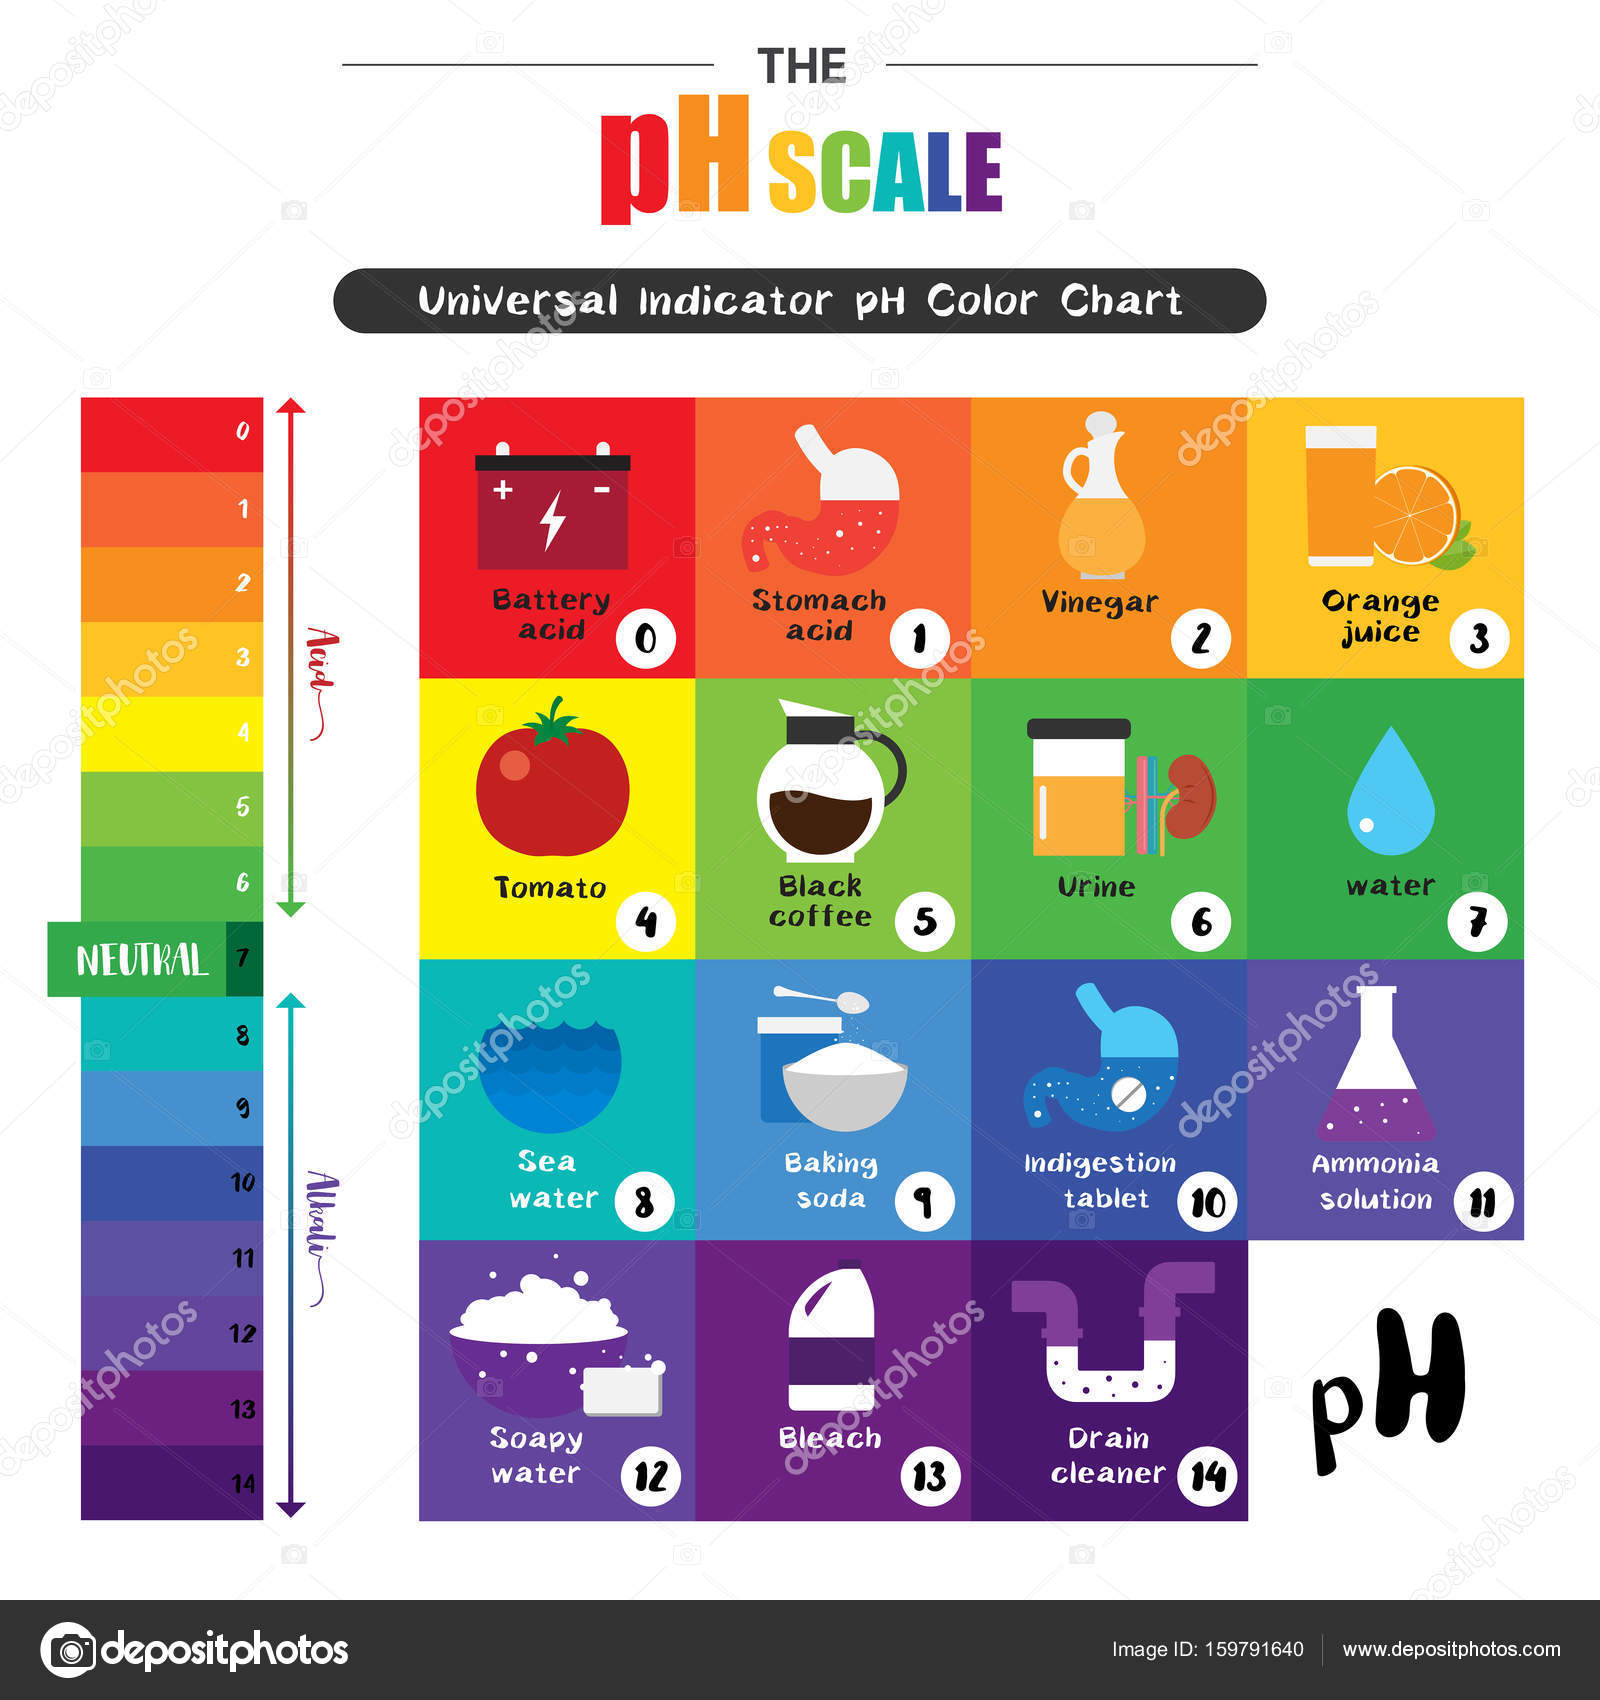 The ph scale universal indicator ph color chart diagram stock the ph scale universal indicator ph color chart diagram stock vector 159791640 nvjuhfo Choice Image